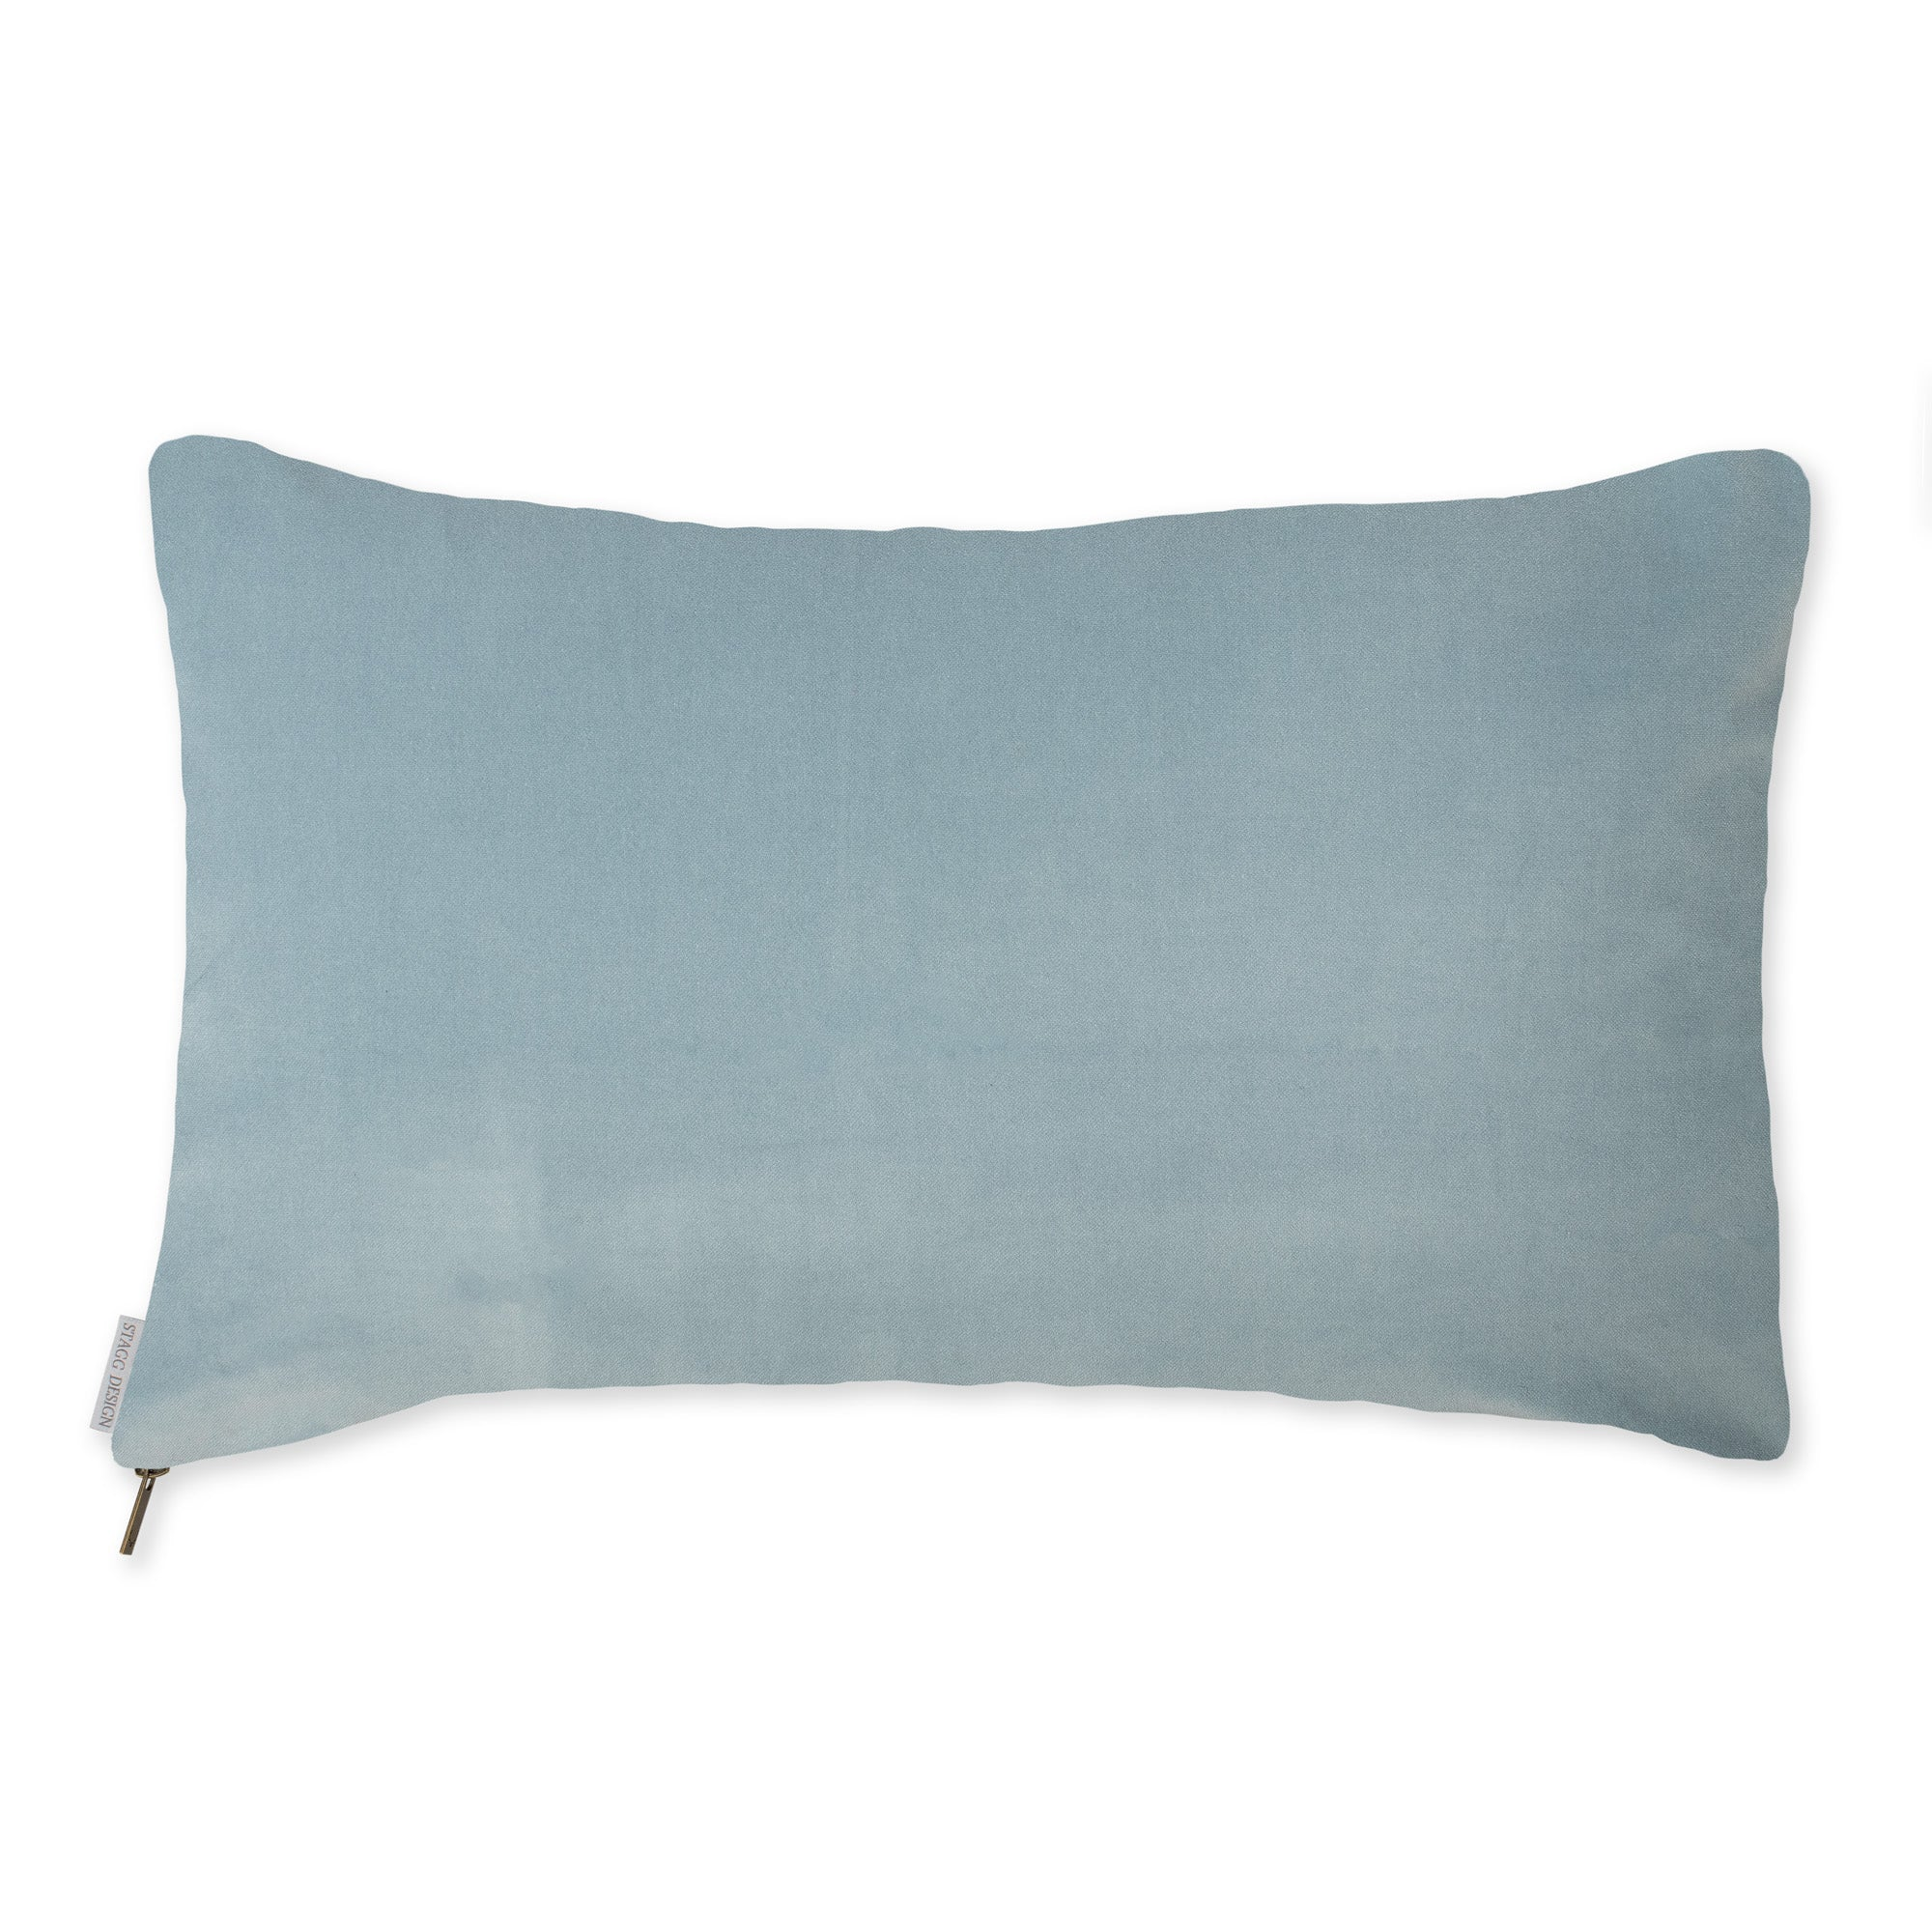 Indigo Pillow Pairing (Set of 3)